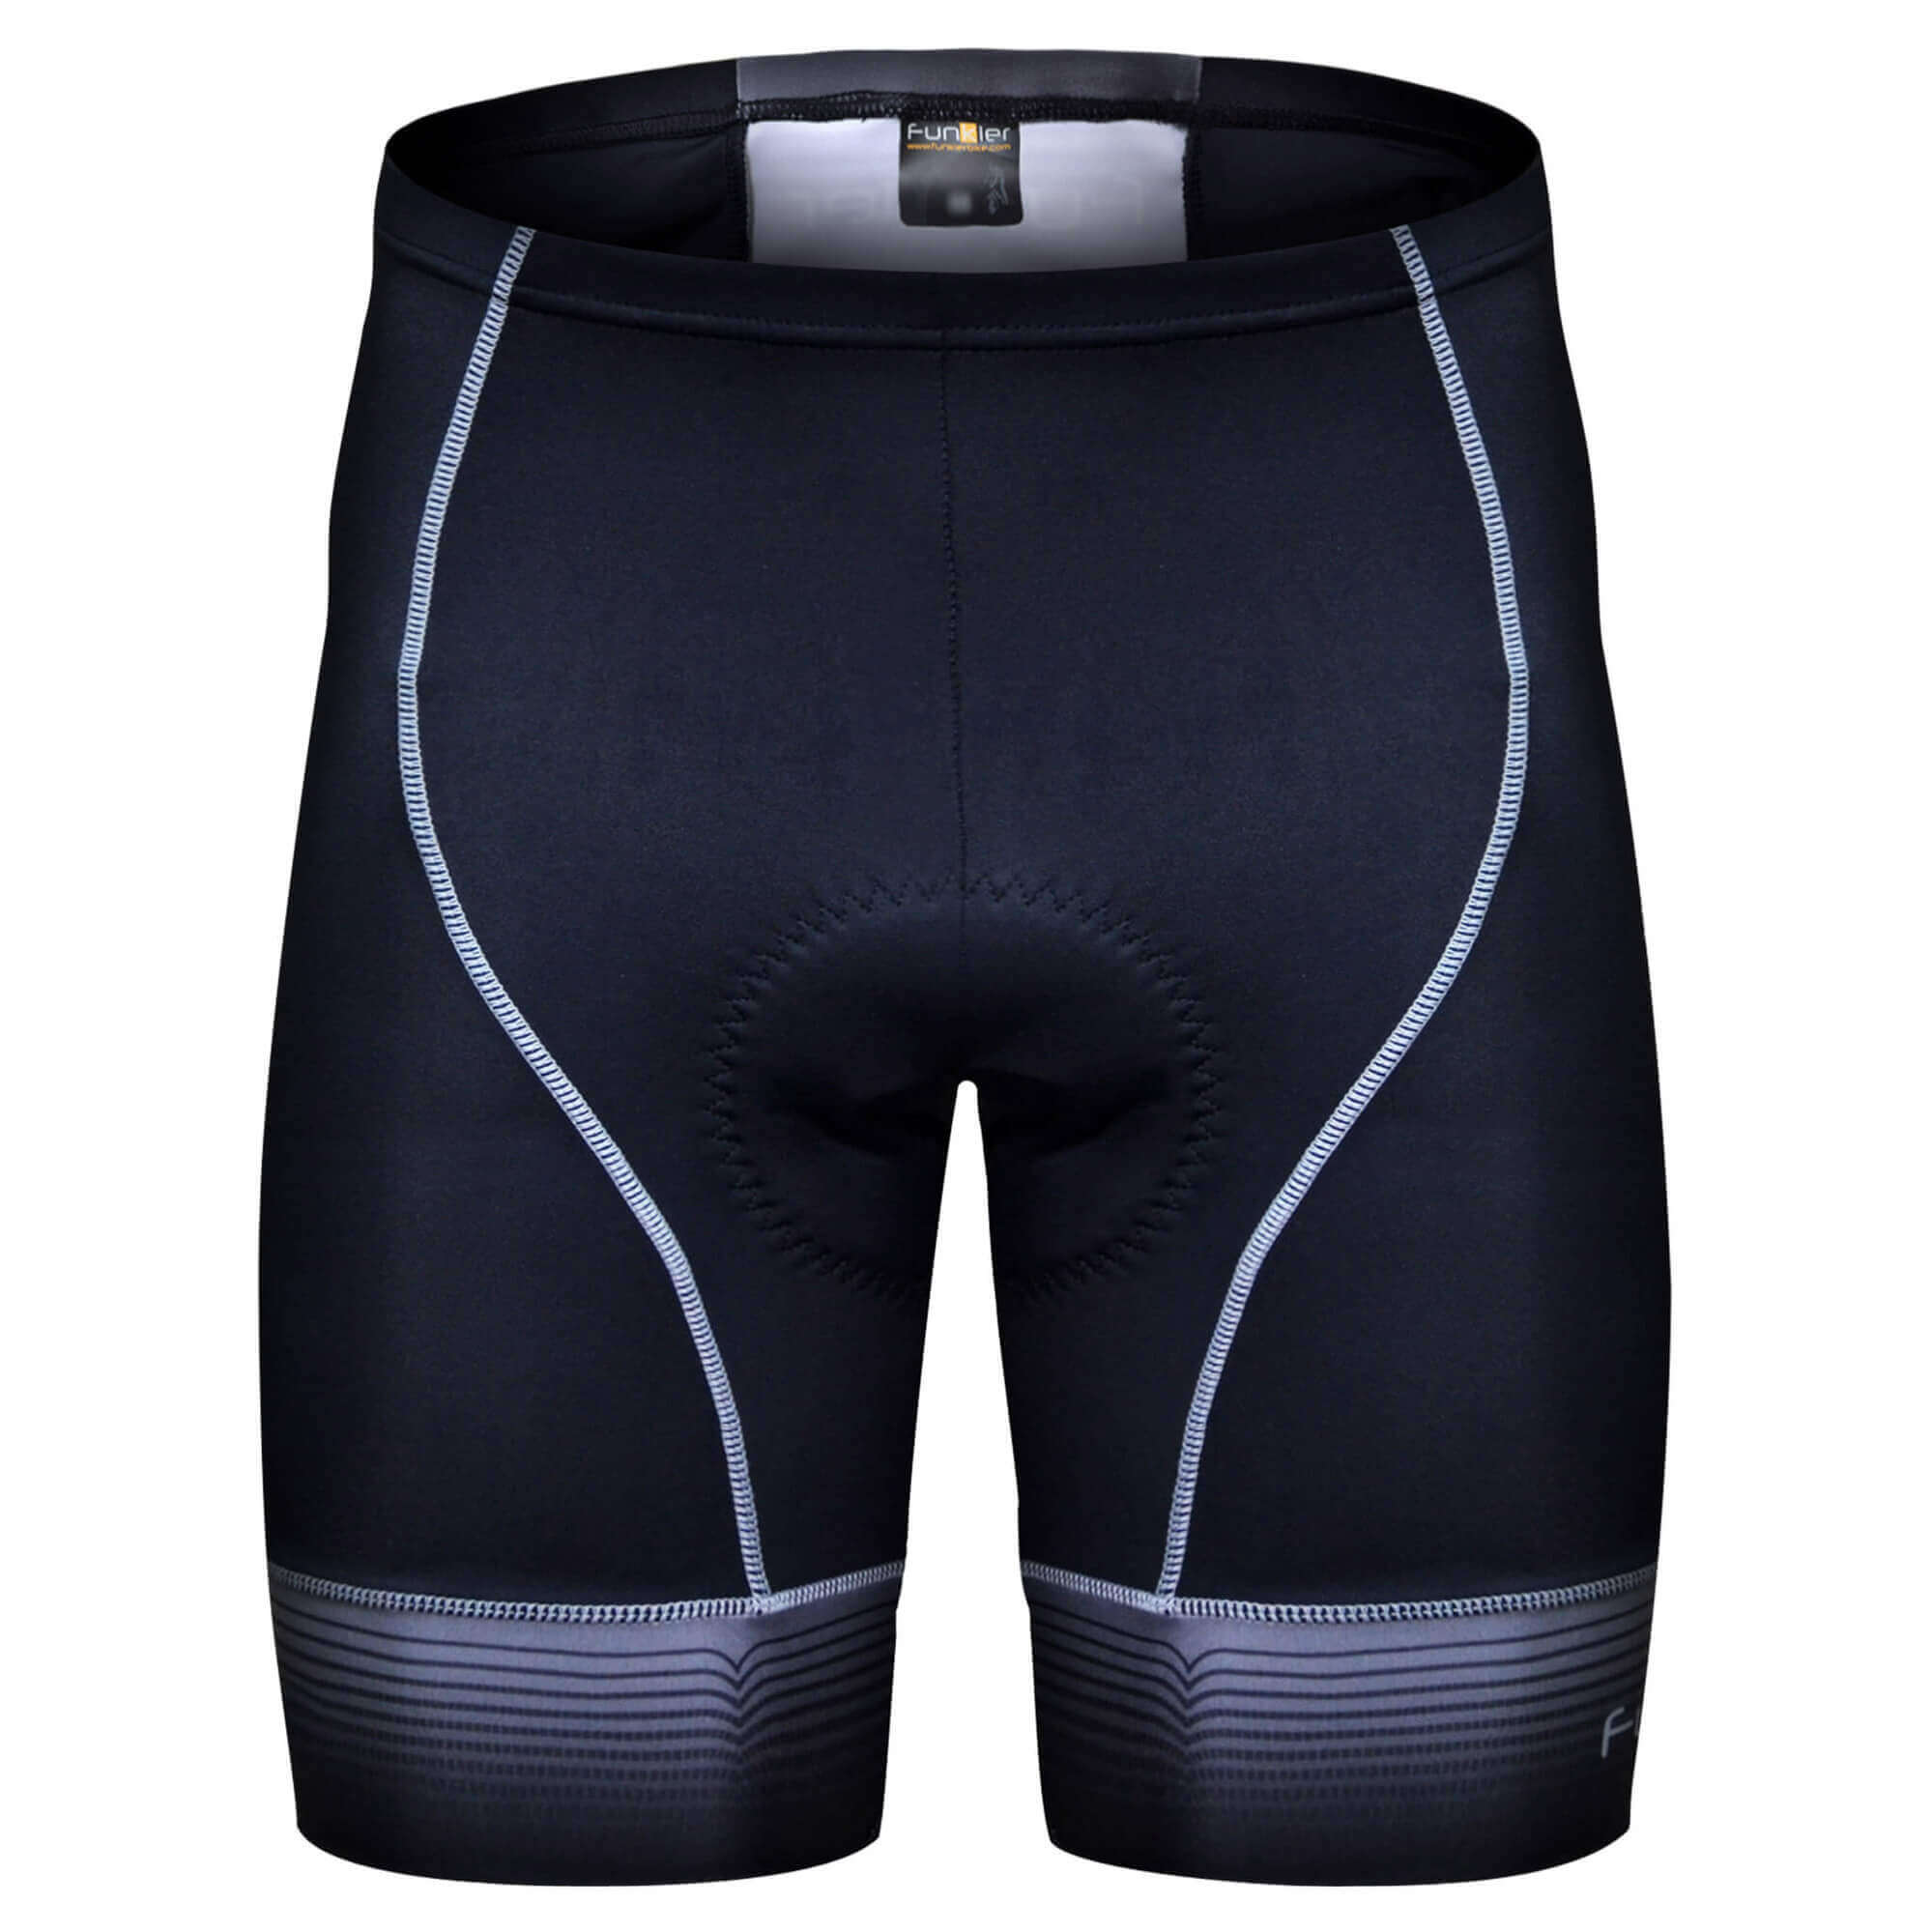 01debcfecce Funkier - High performance cycling apparel at an affordable price.